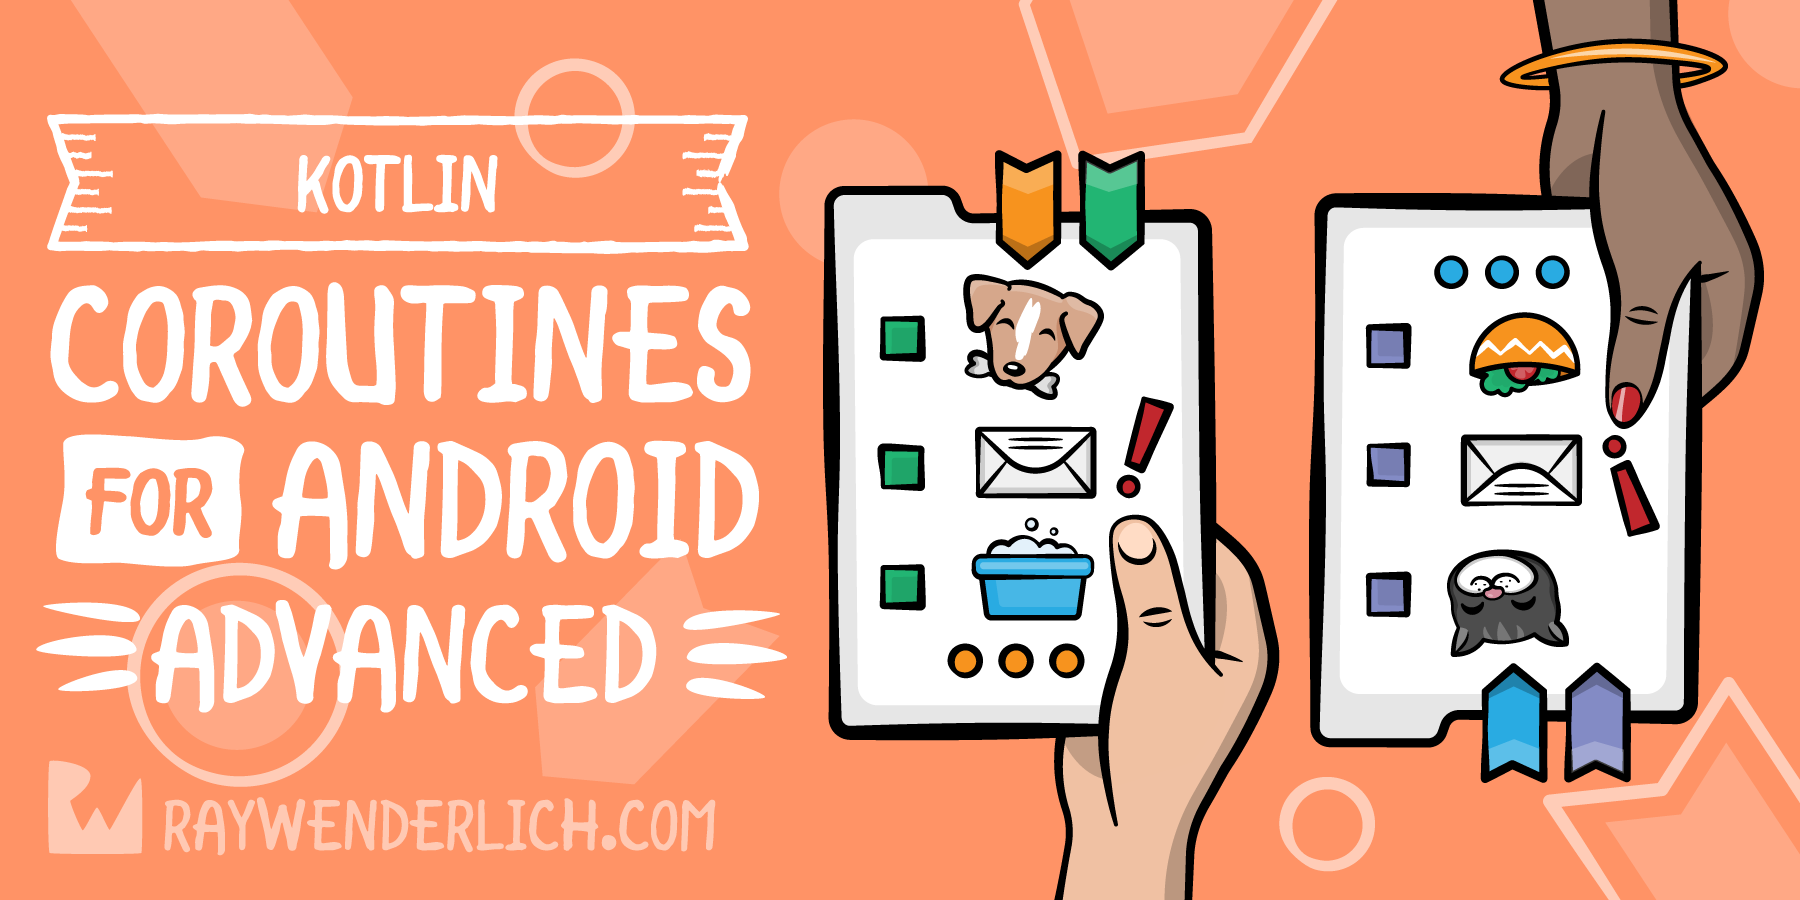 Kotlin Coroutines Tutorial For Android Advanced Raywenderlich Com